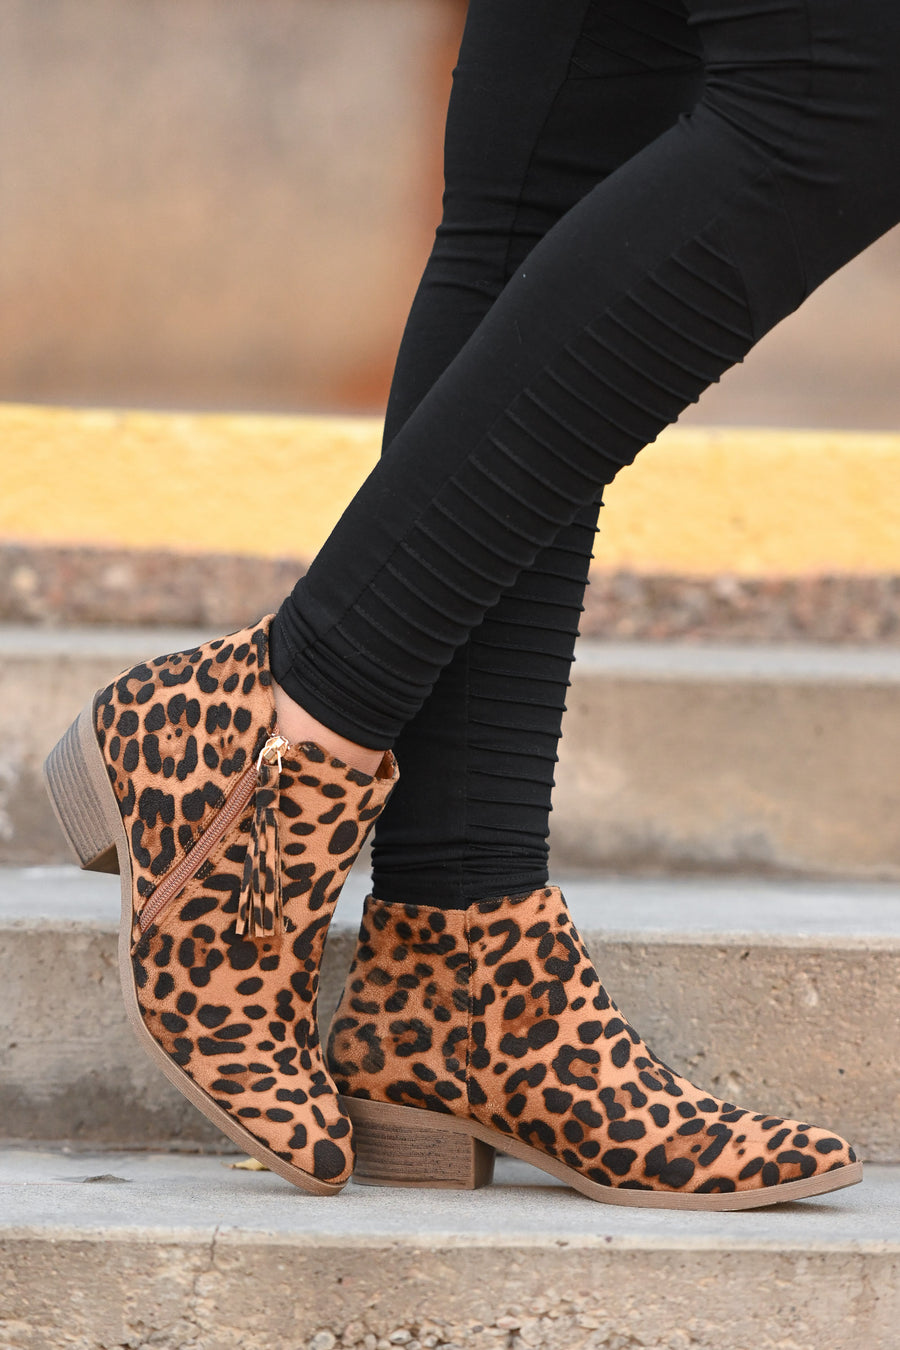 Lexi Leopard Booties women's animal print ankle boot with fringe detail, Closet Candy Boutique 1